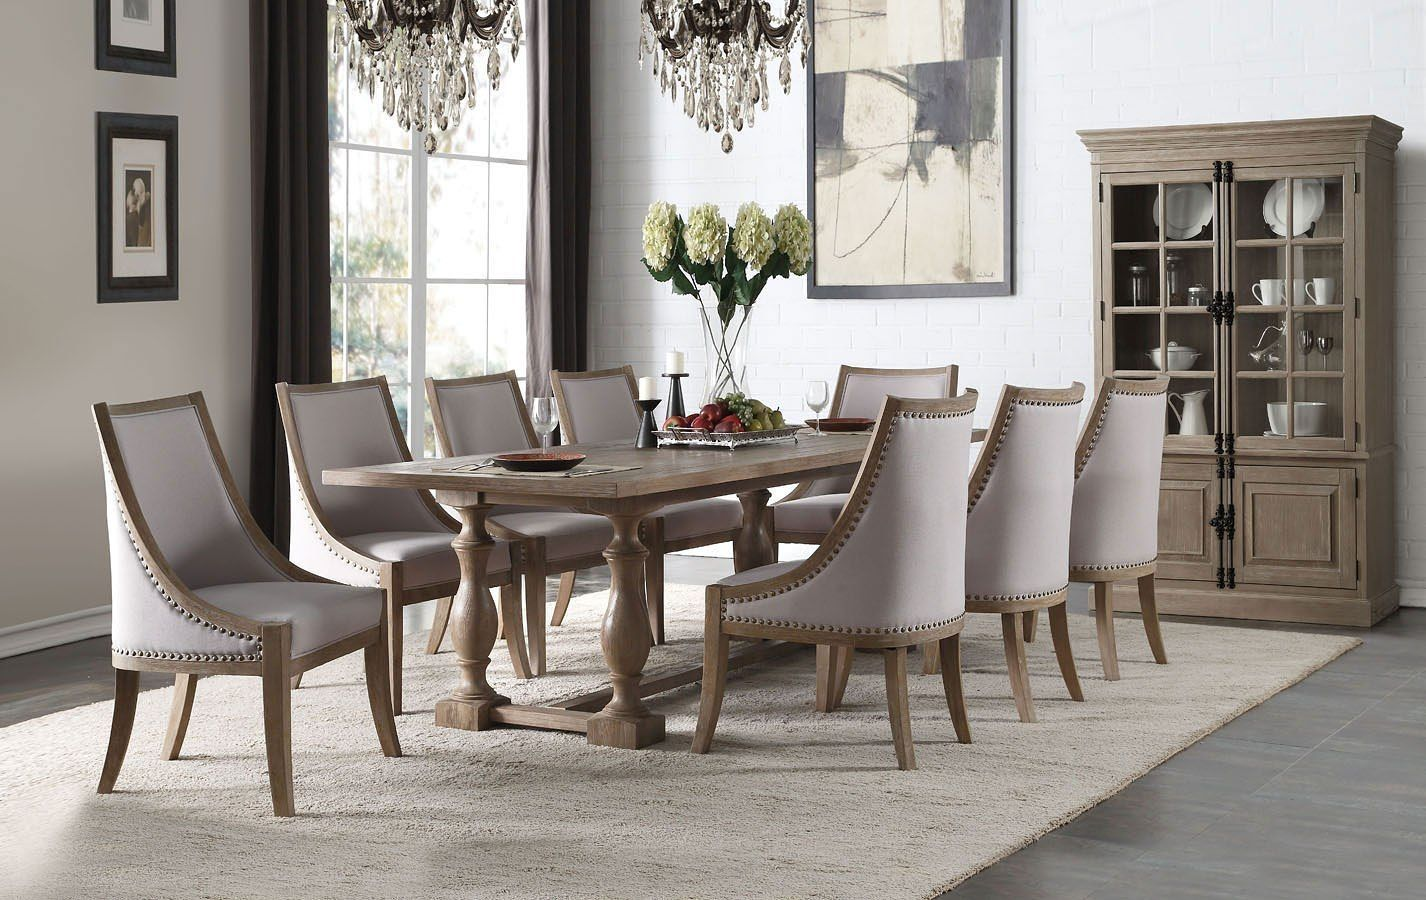 Eleonore dining room set farmhouse style dining table